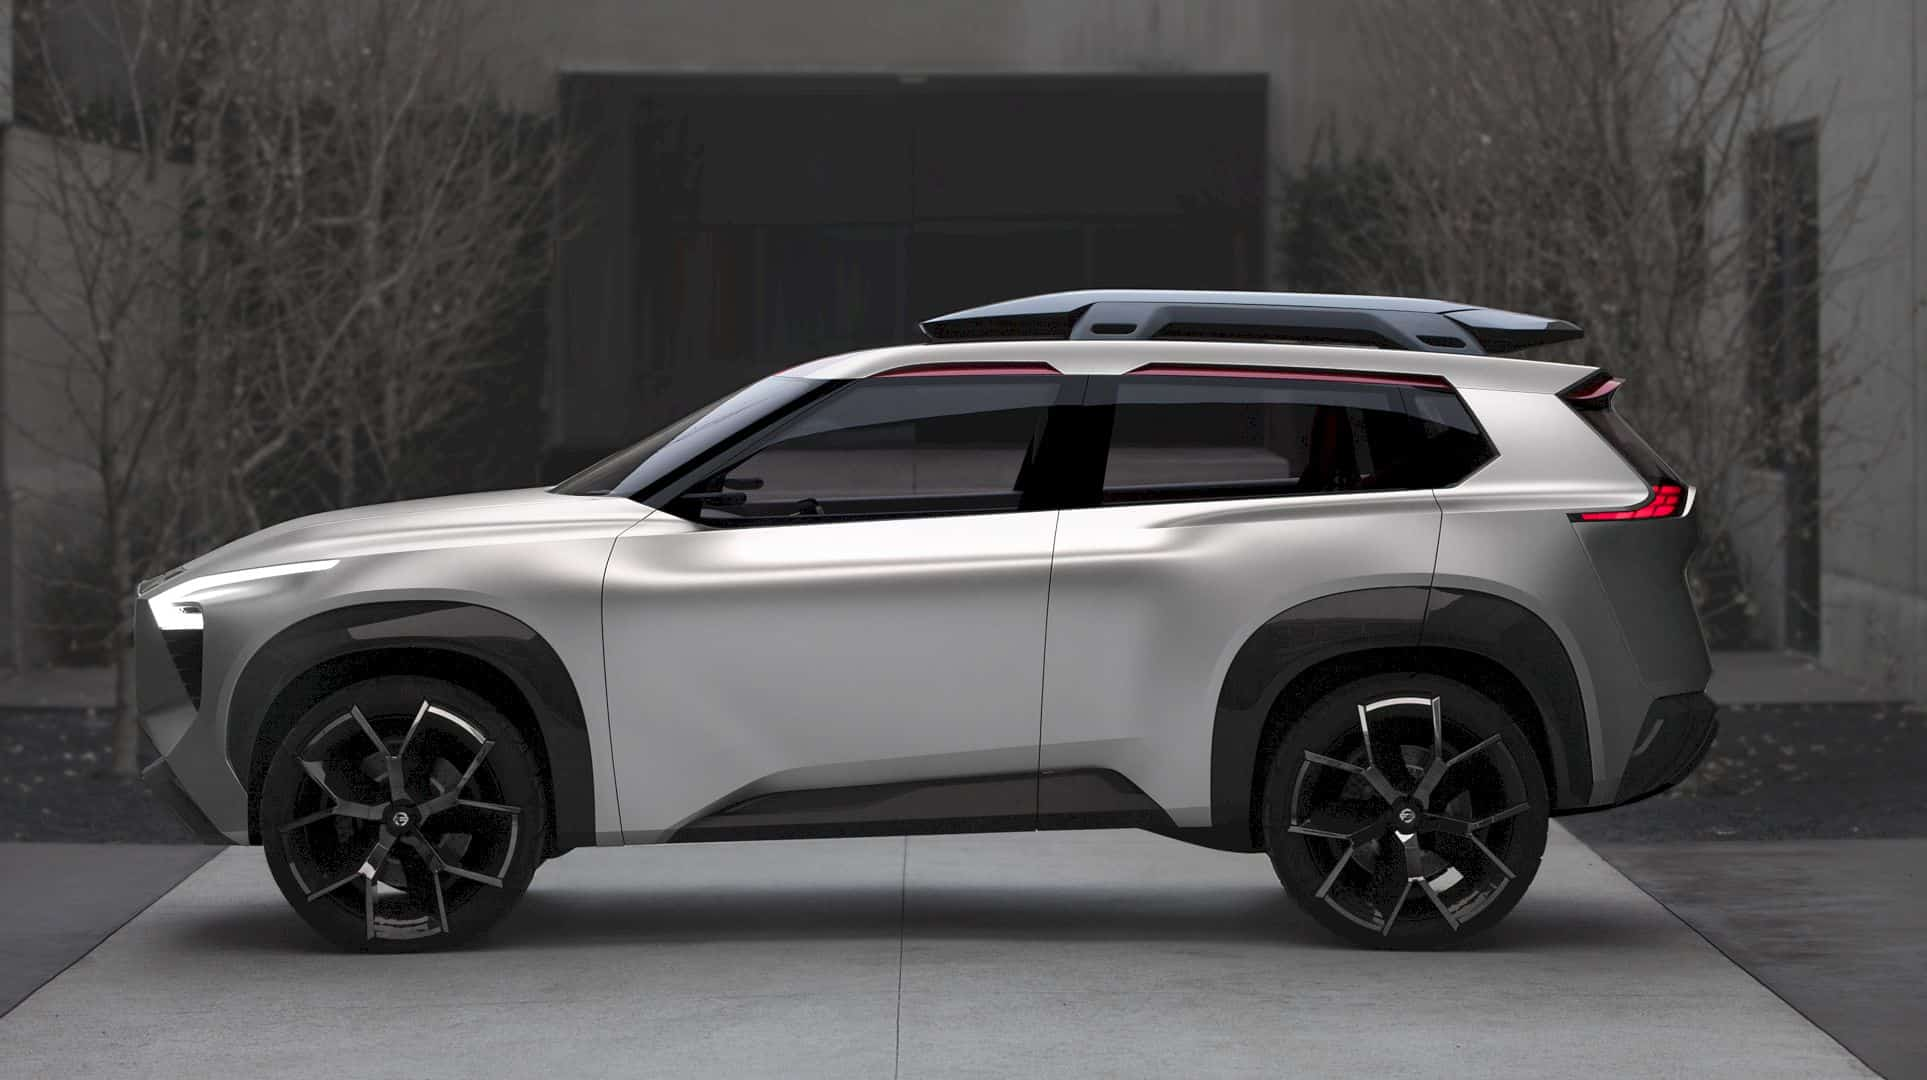 Nissan Xmotion Rule Out Any Doubt in Designing The Next Step of Futuristic SUV